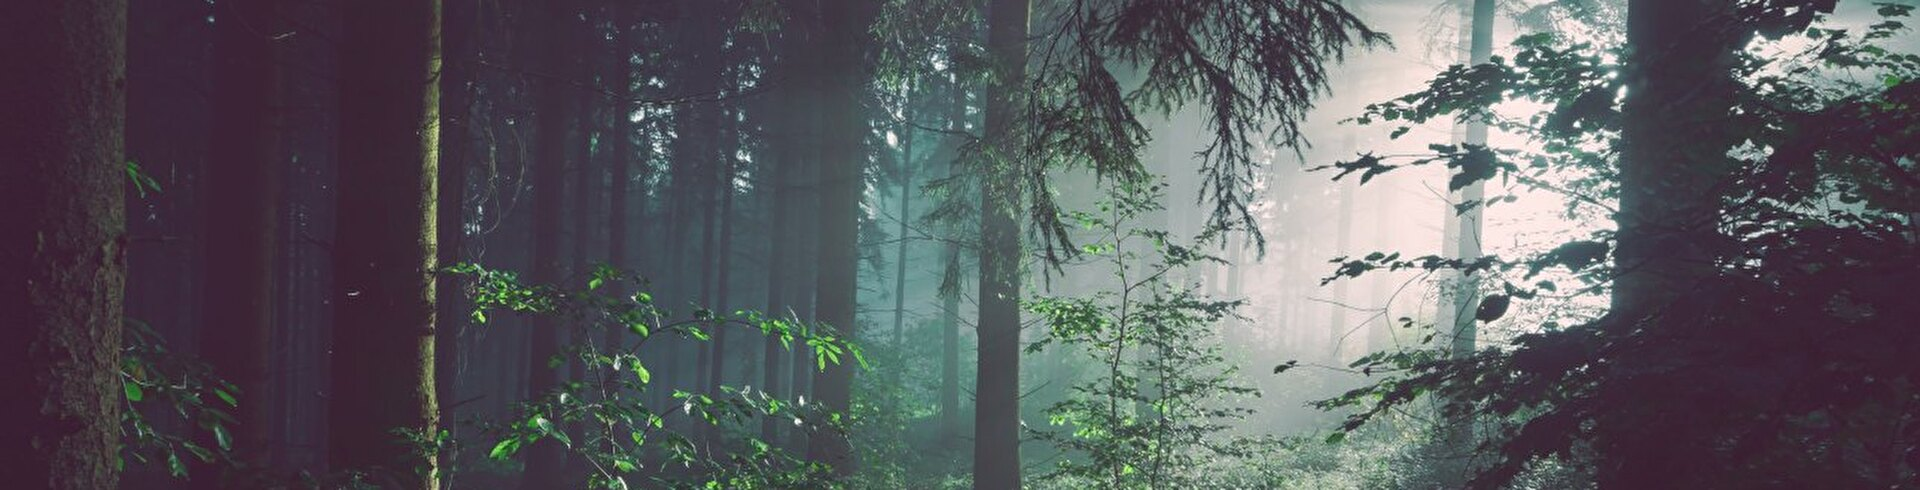 Wald Photo by Sebastian Unrau on Unsplash